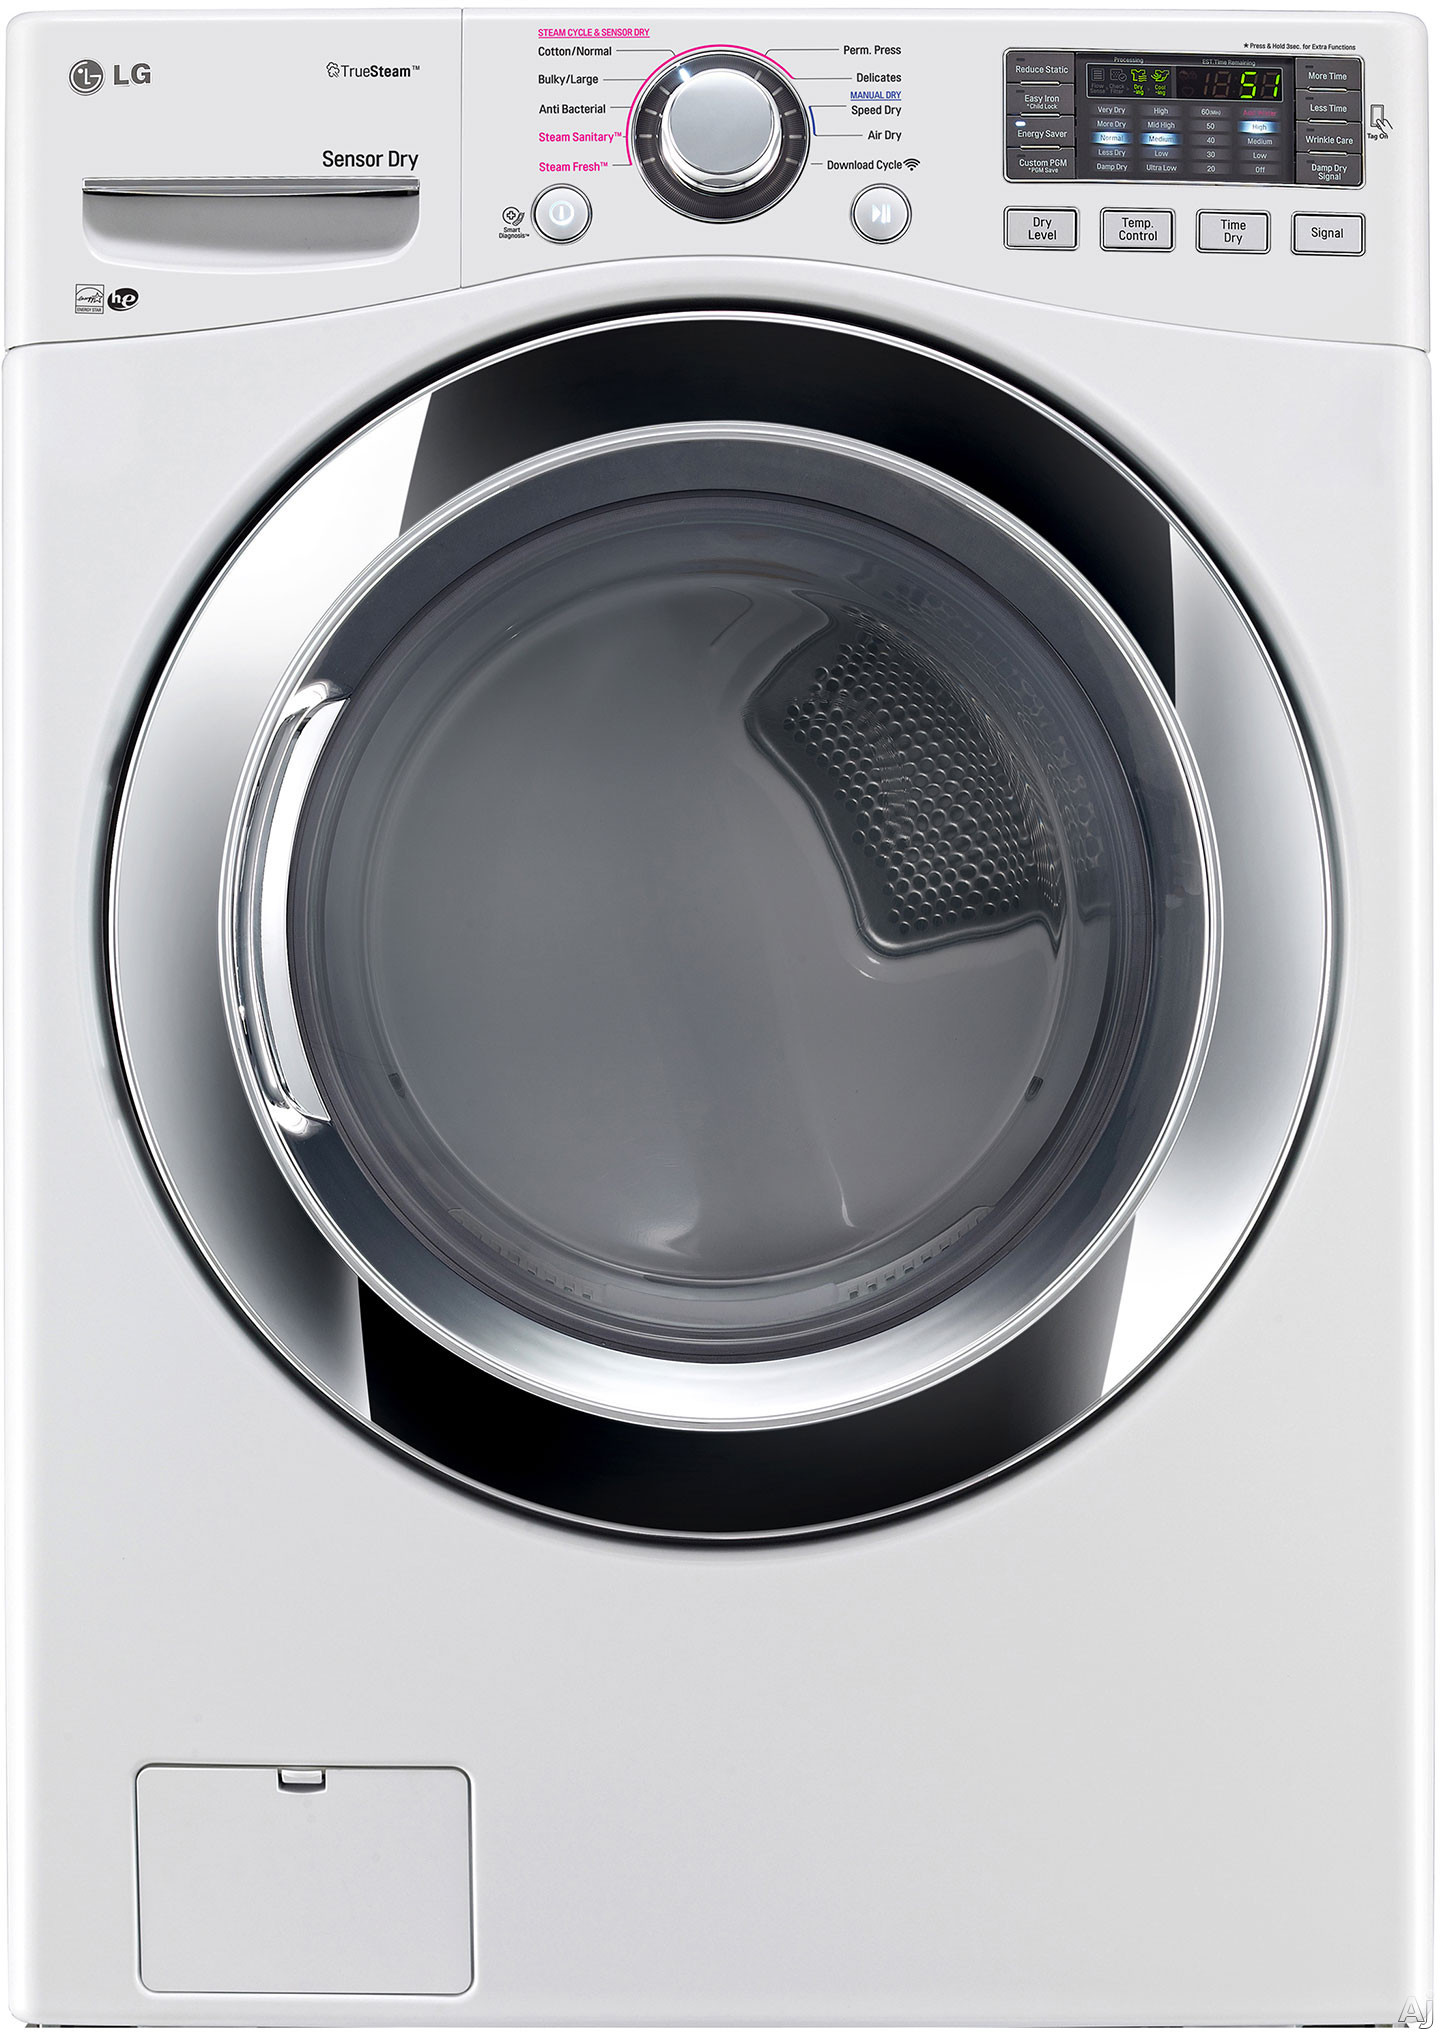 LG DLEX3370W 27 Inch Electric Dryer with TrueSteam Sensor Dry Wrinkle Care Speed Dry 10 Drying Cycles 5 Temperature Settings Smart Diagnosis LoDecibel Quiet Operation ENERGY STAR Stacking Capability L